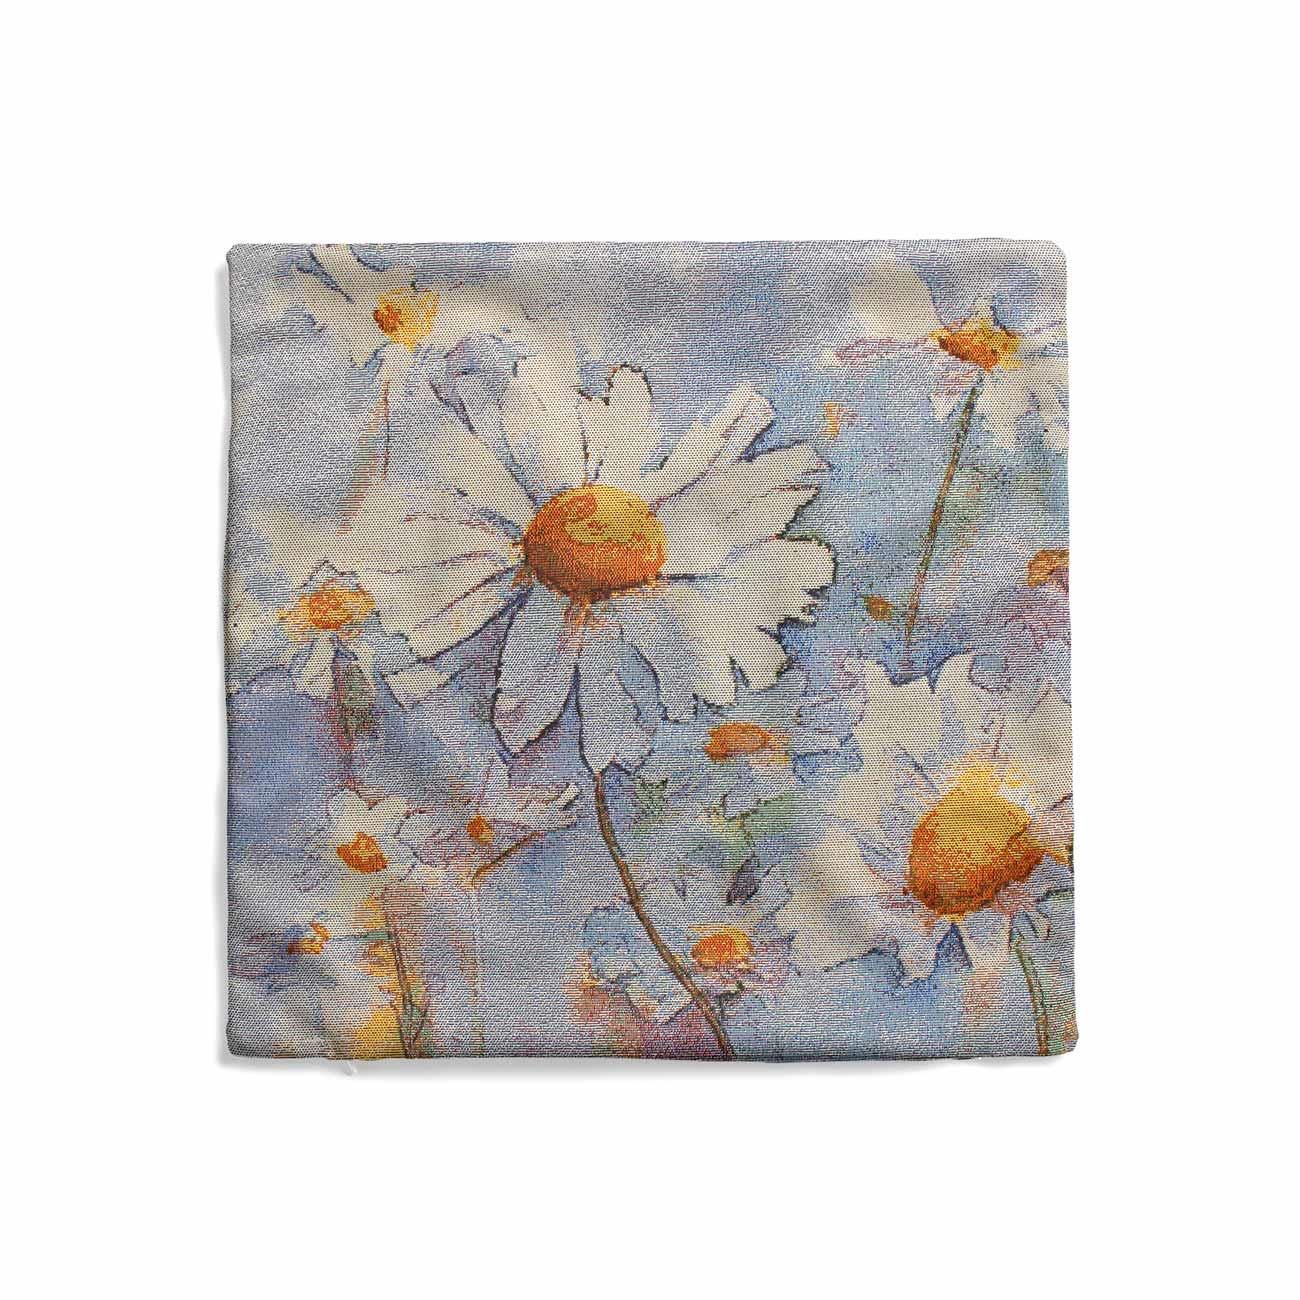 Tapestry-Cushion-Covers-Vintage-Pillow-Cover-Collection-18-034-45cm-Filled-Cushions thumbnail 38